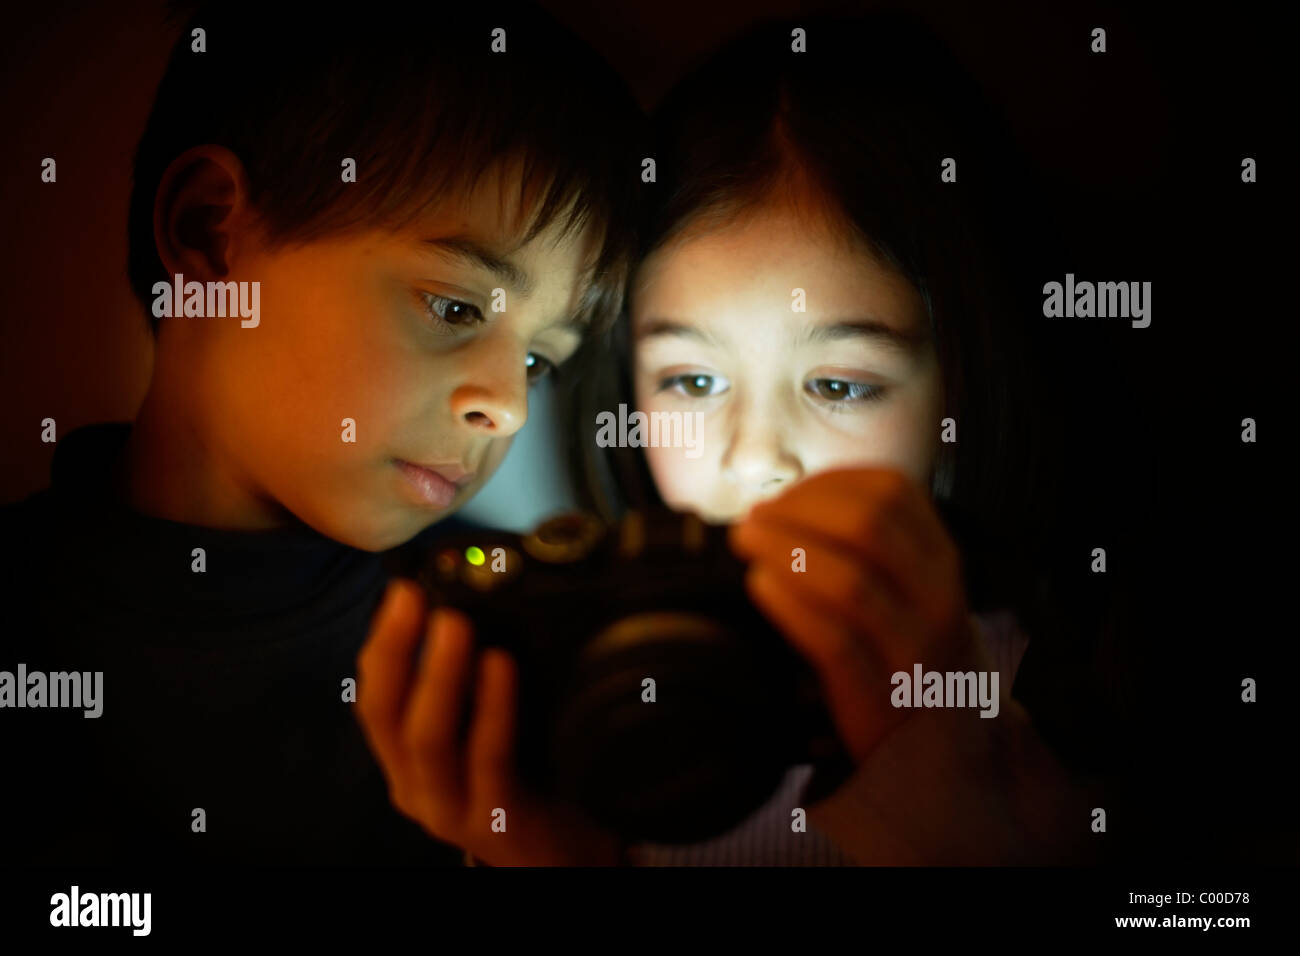 Boy and girl look at digital camera screen - Stock Image